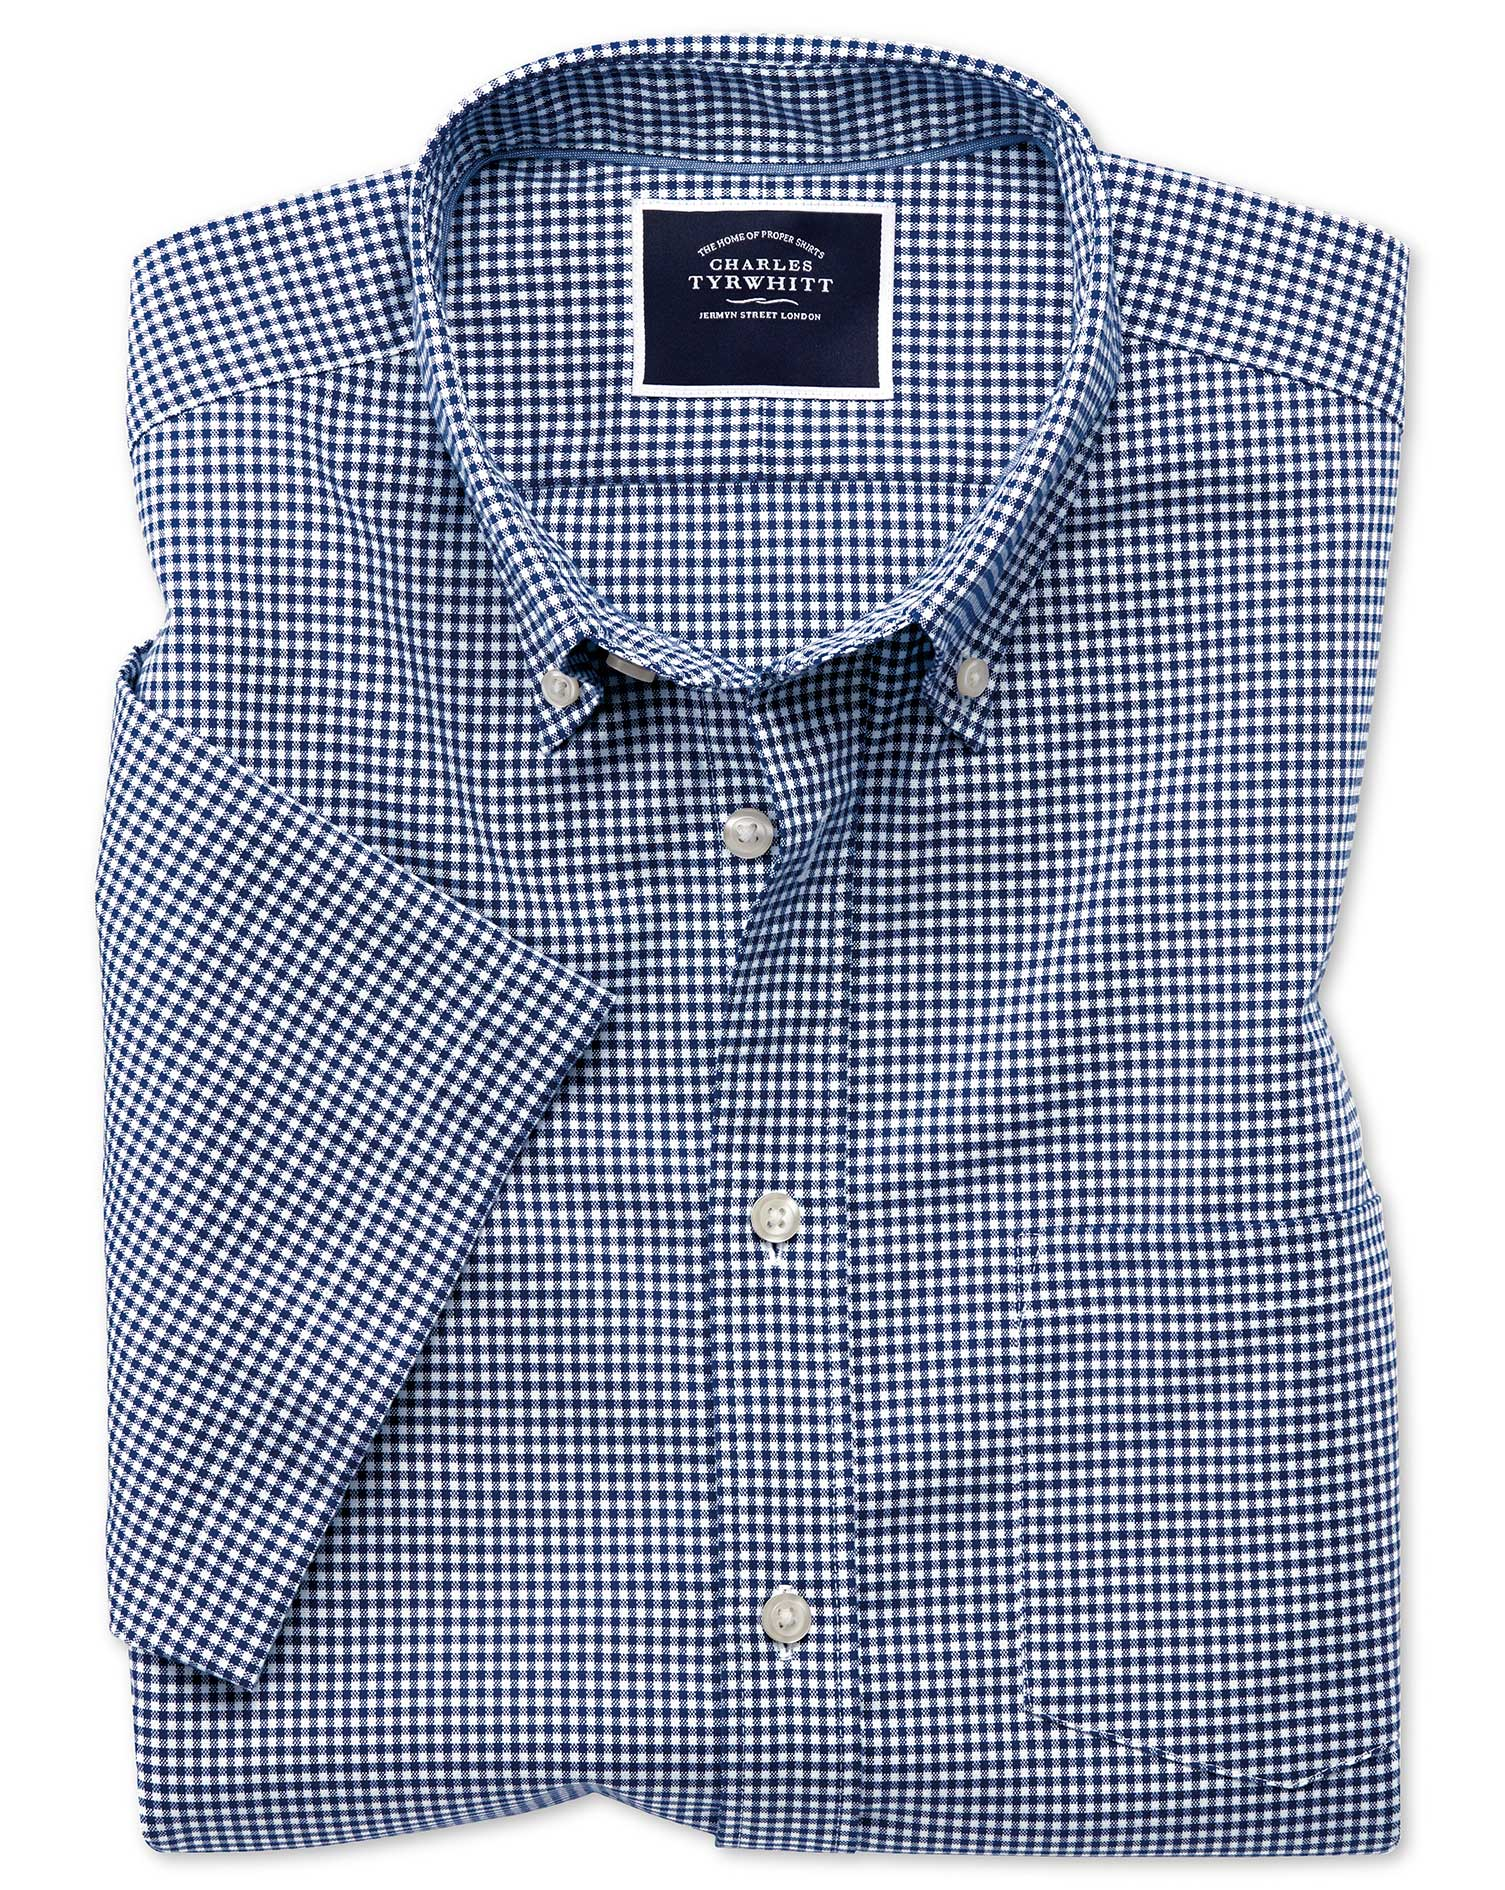 Slim Fit Royal Blue Short Sleeve Gingham Soft Washed Non-Iron Stretch Cotton Shirt Single Cuff Size